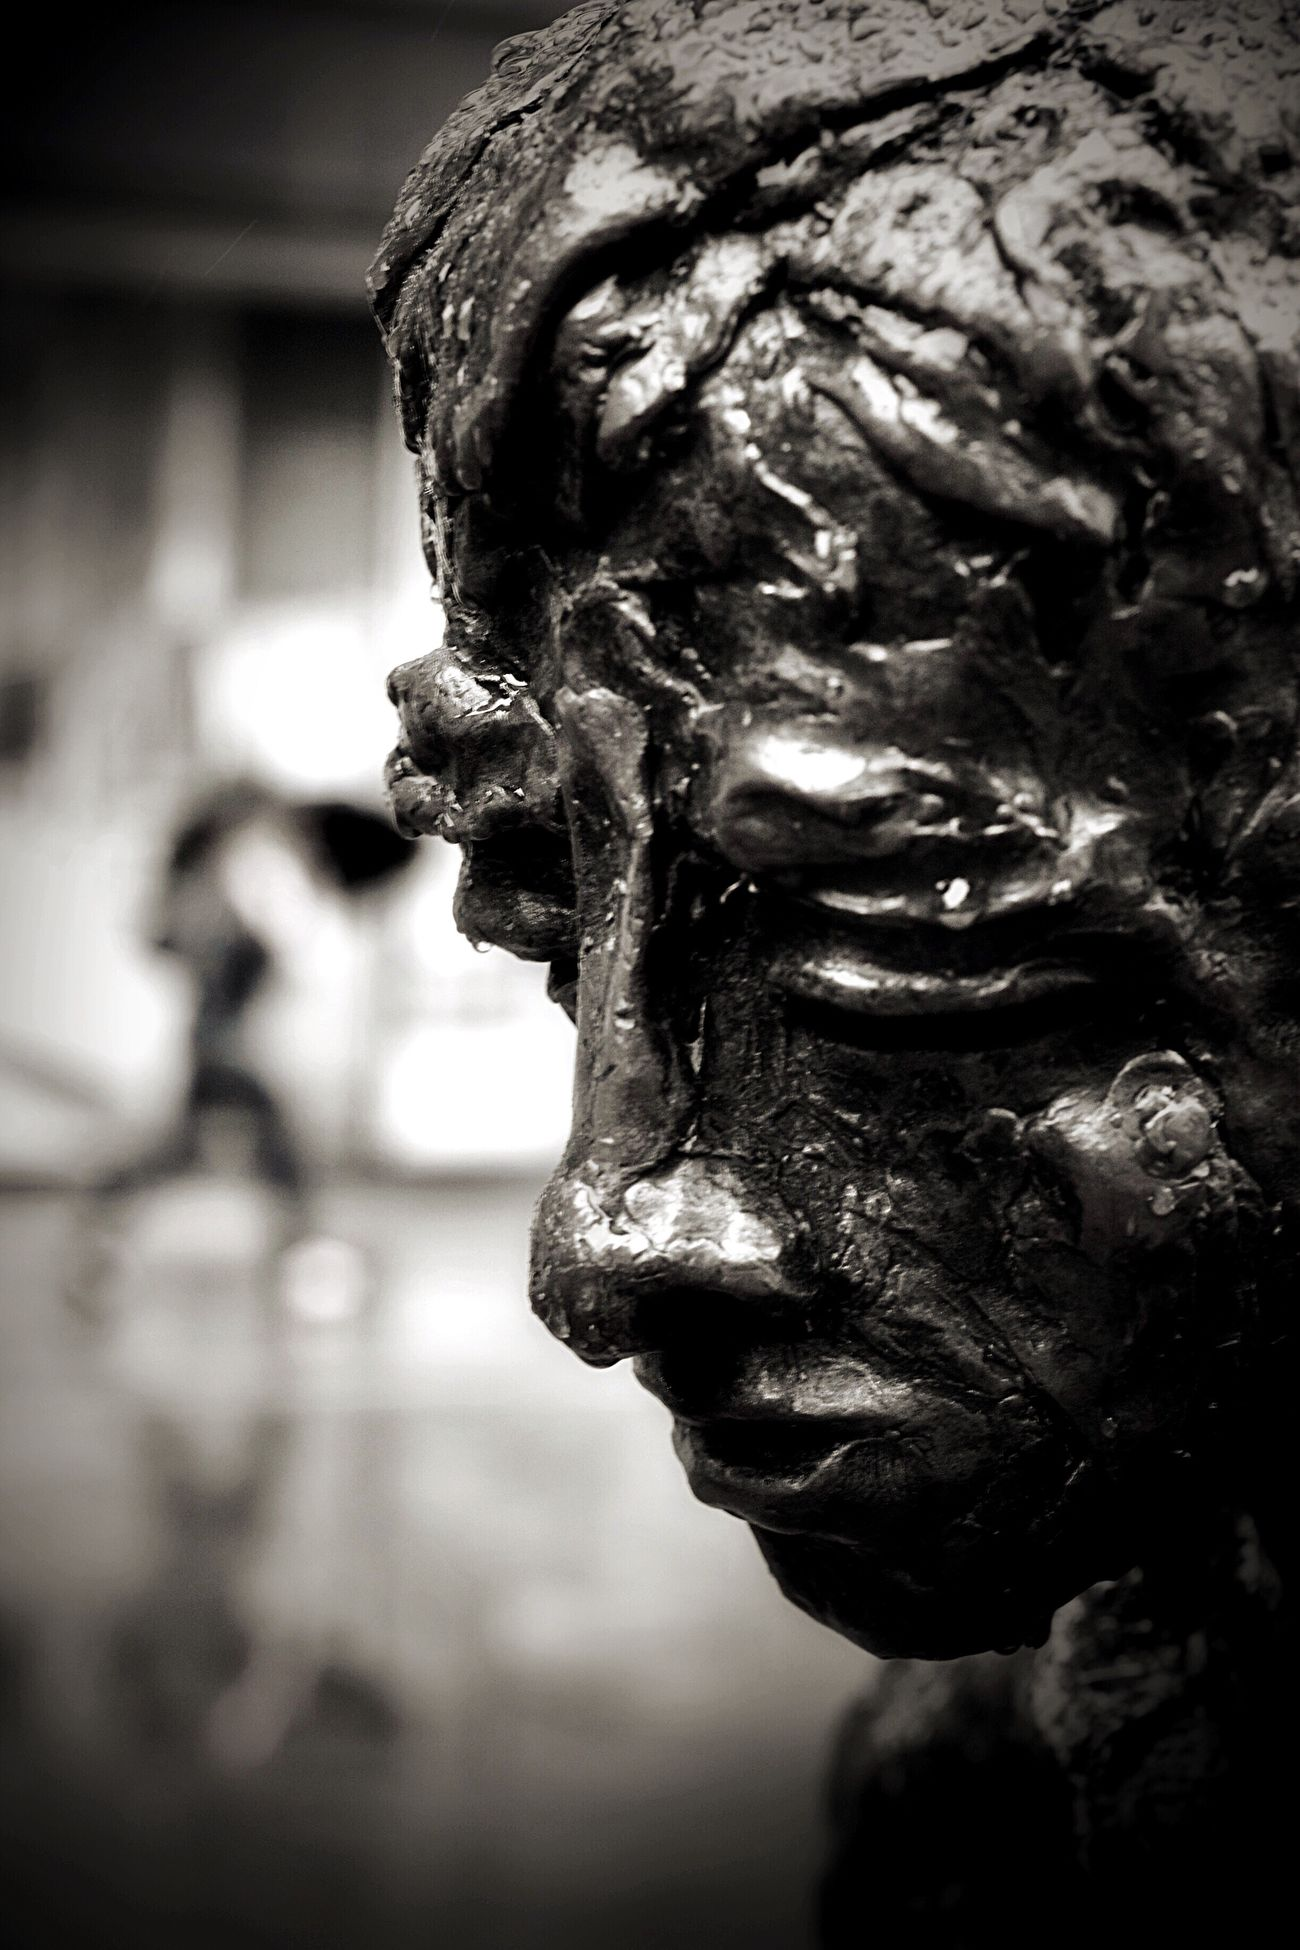 Statue Sculpture Art And Craft Human Representation Male Likeness Creativity Focus On Foreground Close-up No People Outdoors Day Renaissance Light And Shadow Dof 50mm Nikon Streetphoto_bw Blackandwhite